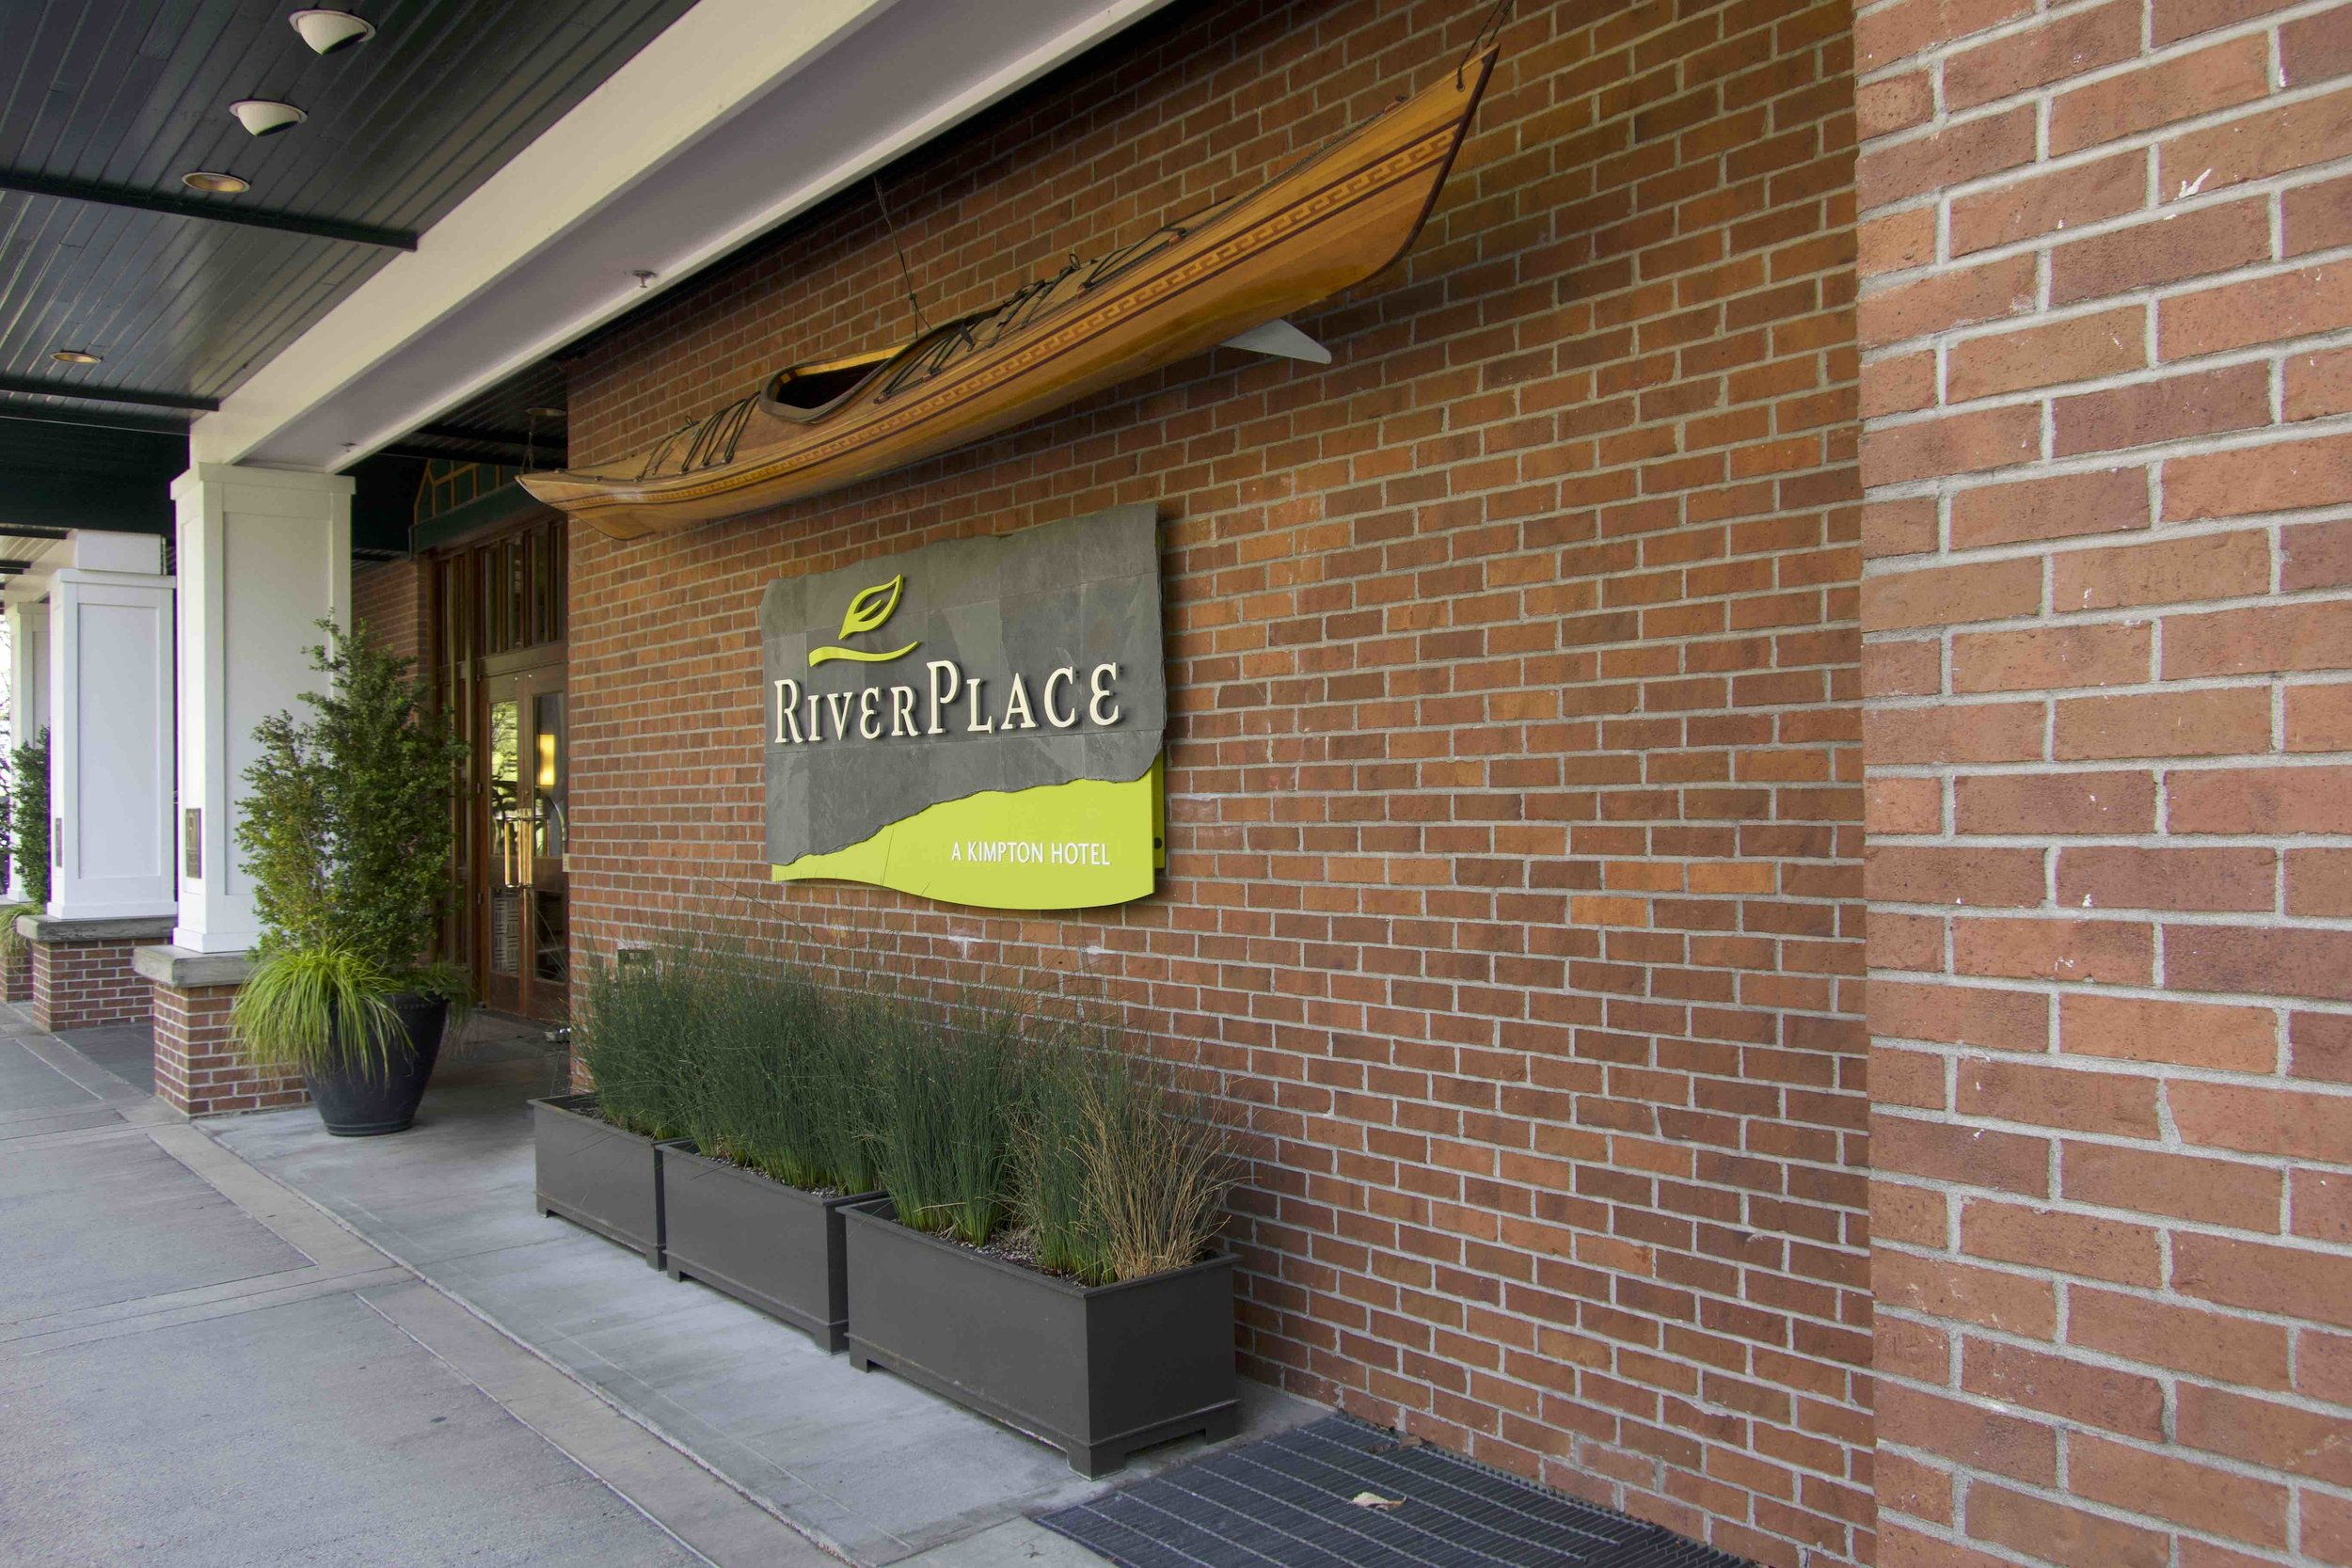 RiverPlace Hotel Sign